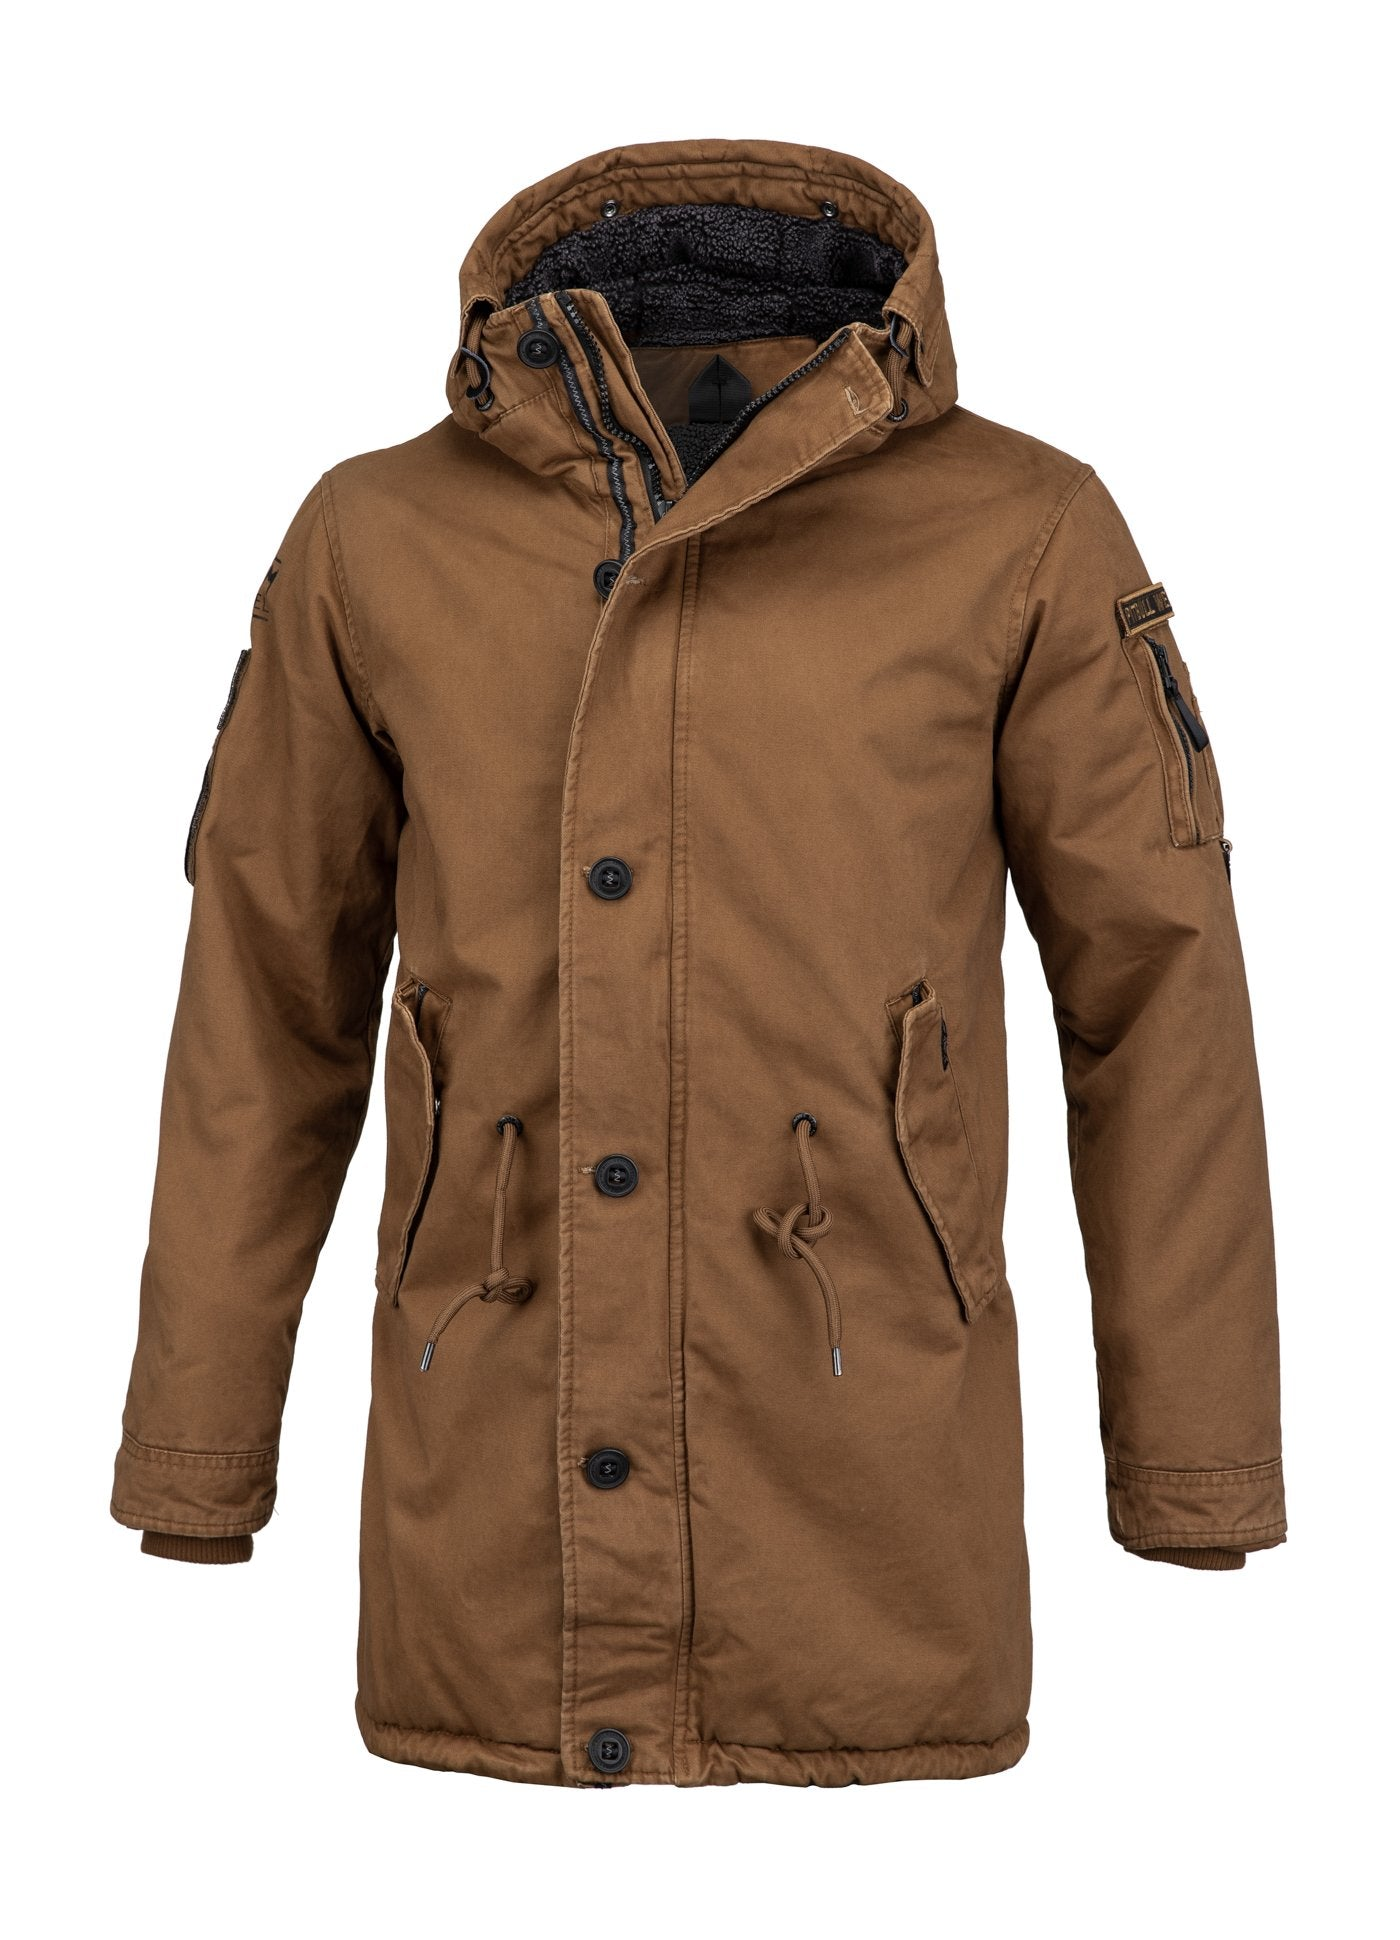 WINTER JACKET HEMLOCK III BROWN - pitbullwestcoast